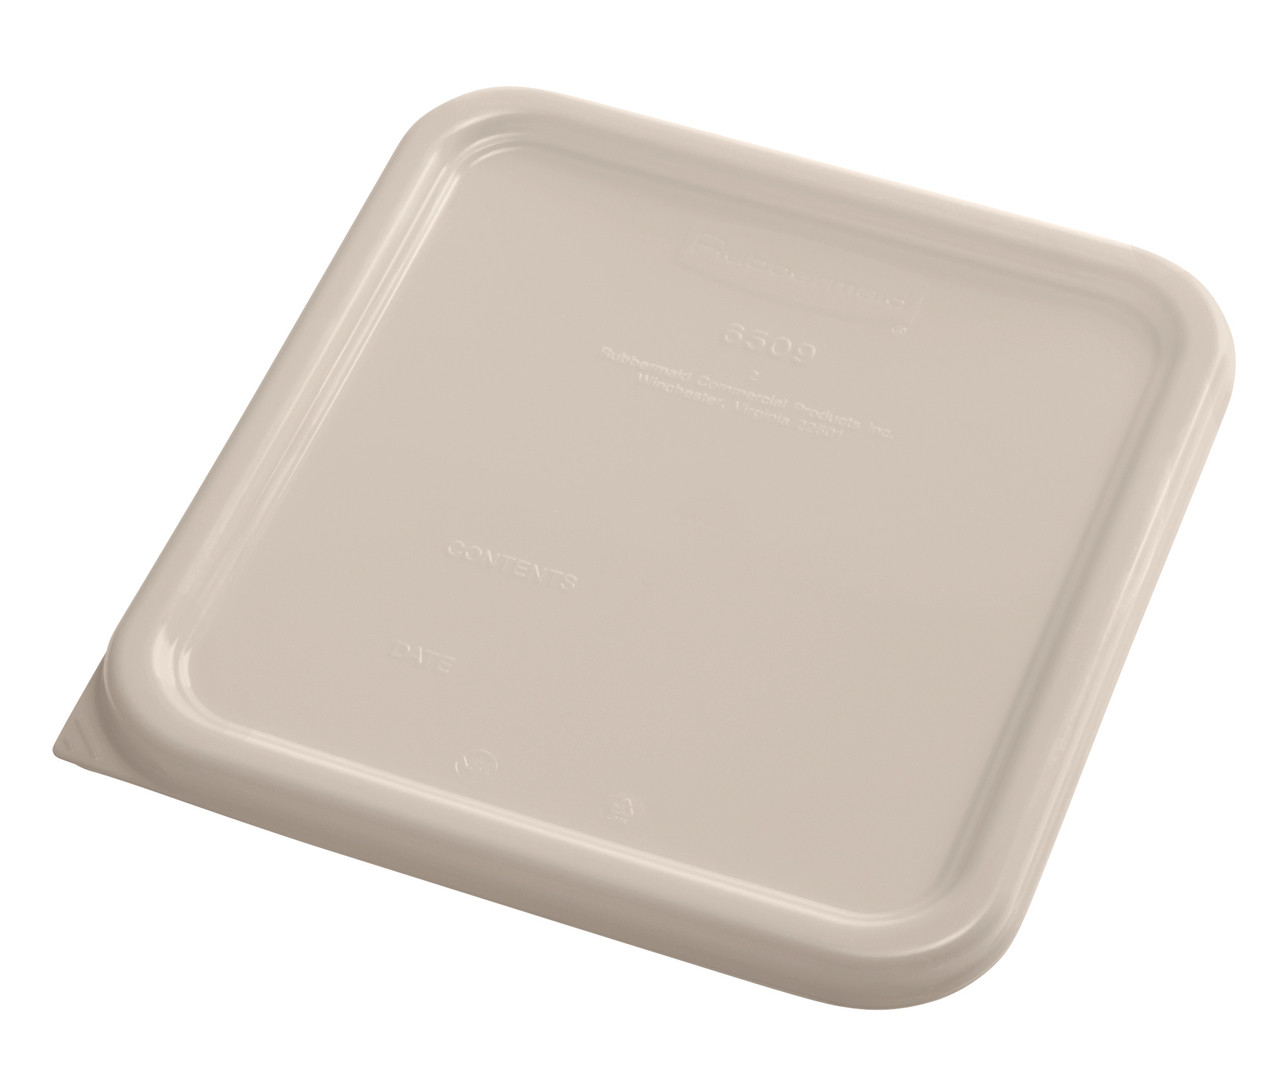 Rubbermaid Square Container Lid - Small Brown - 1980305